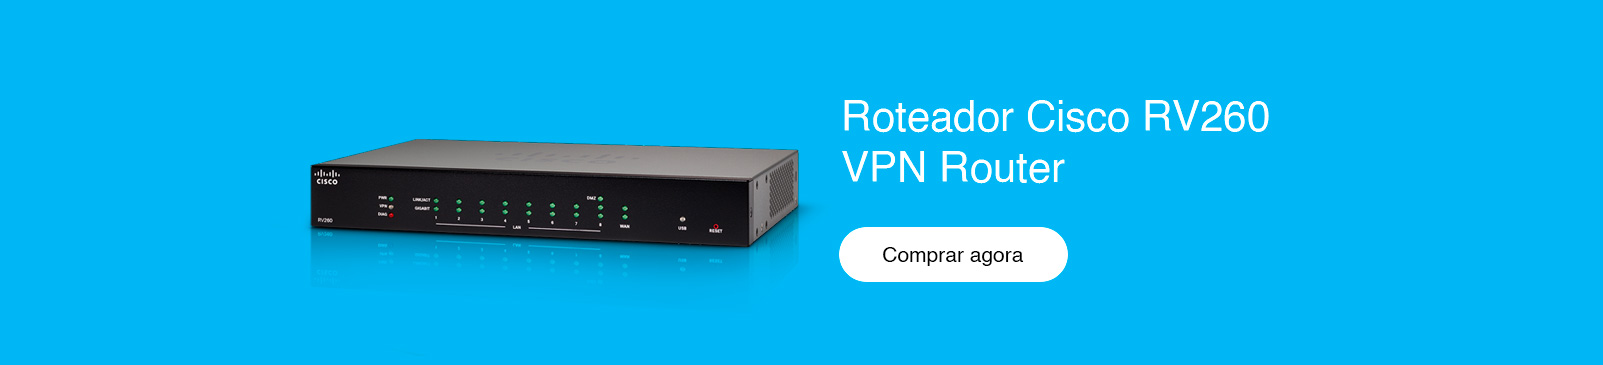 Roteador Cisco RV260